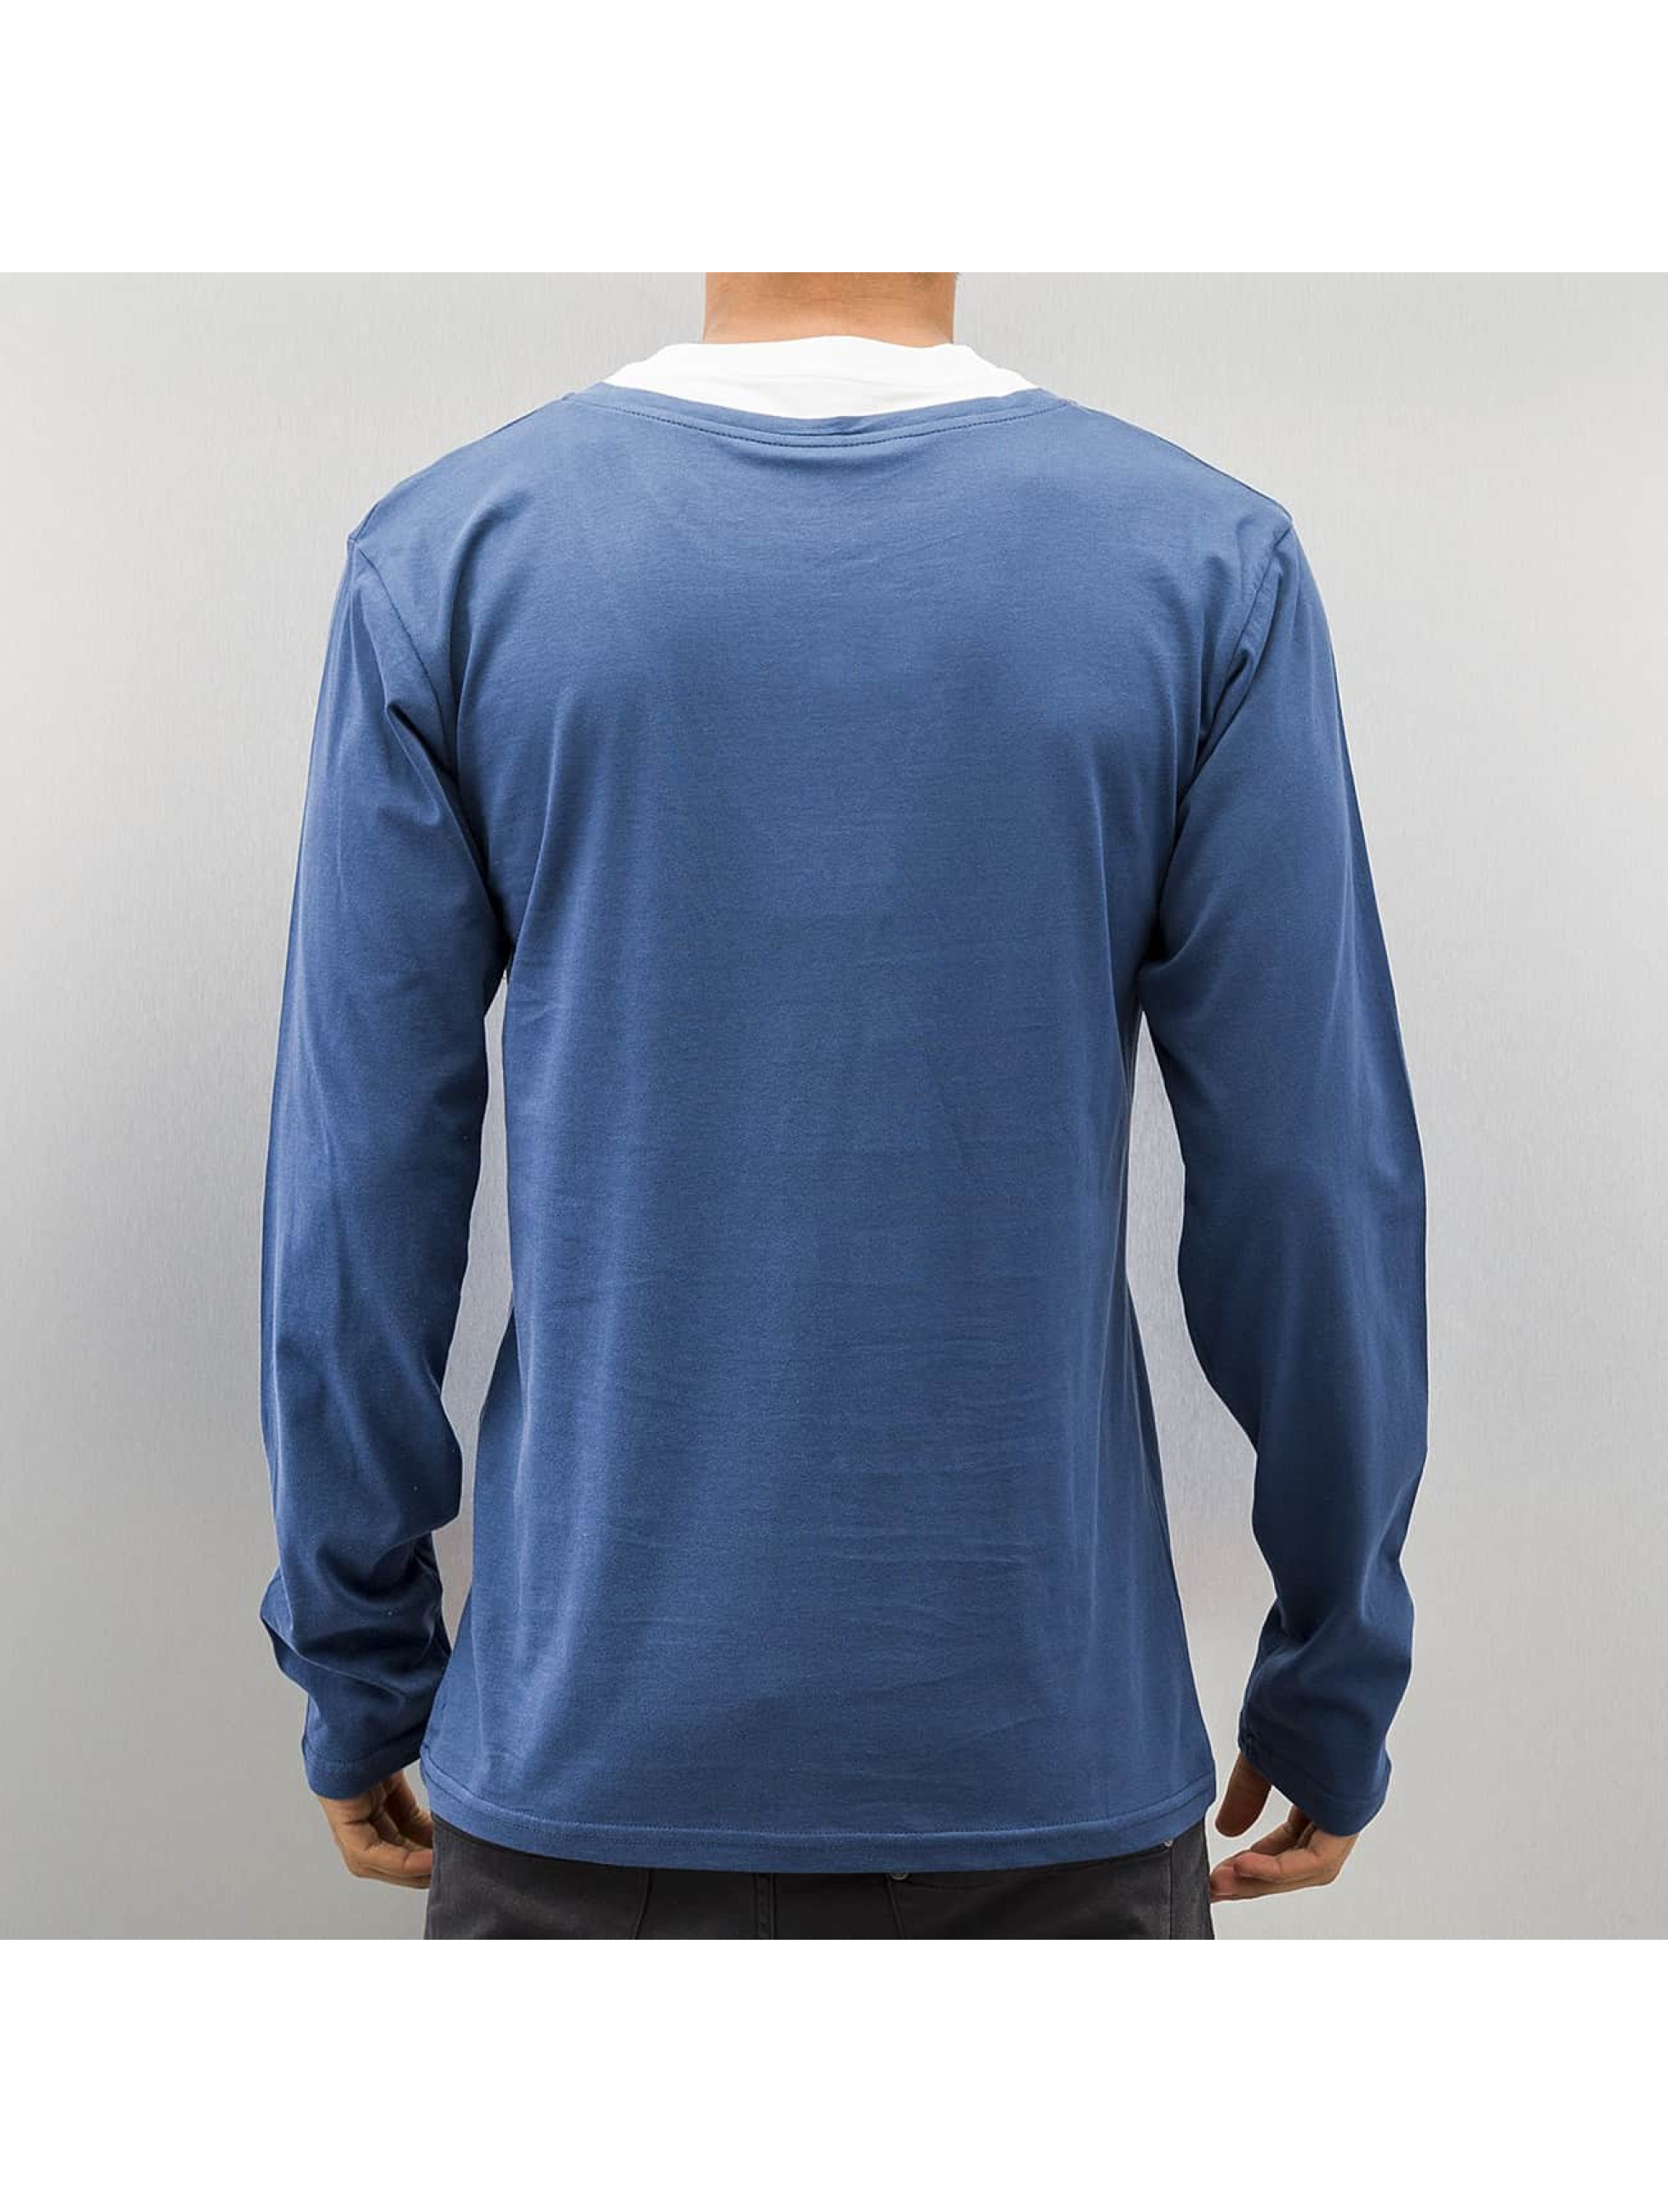 Cazzy Clang T-Shirt manches longues Breast Pocket bleu